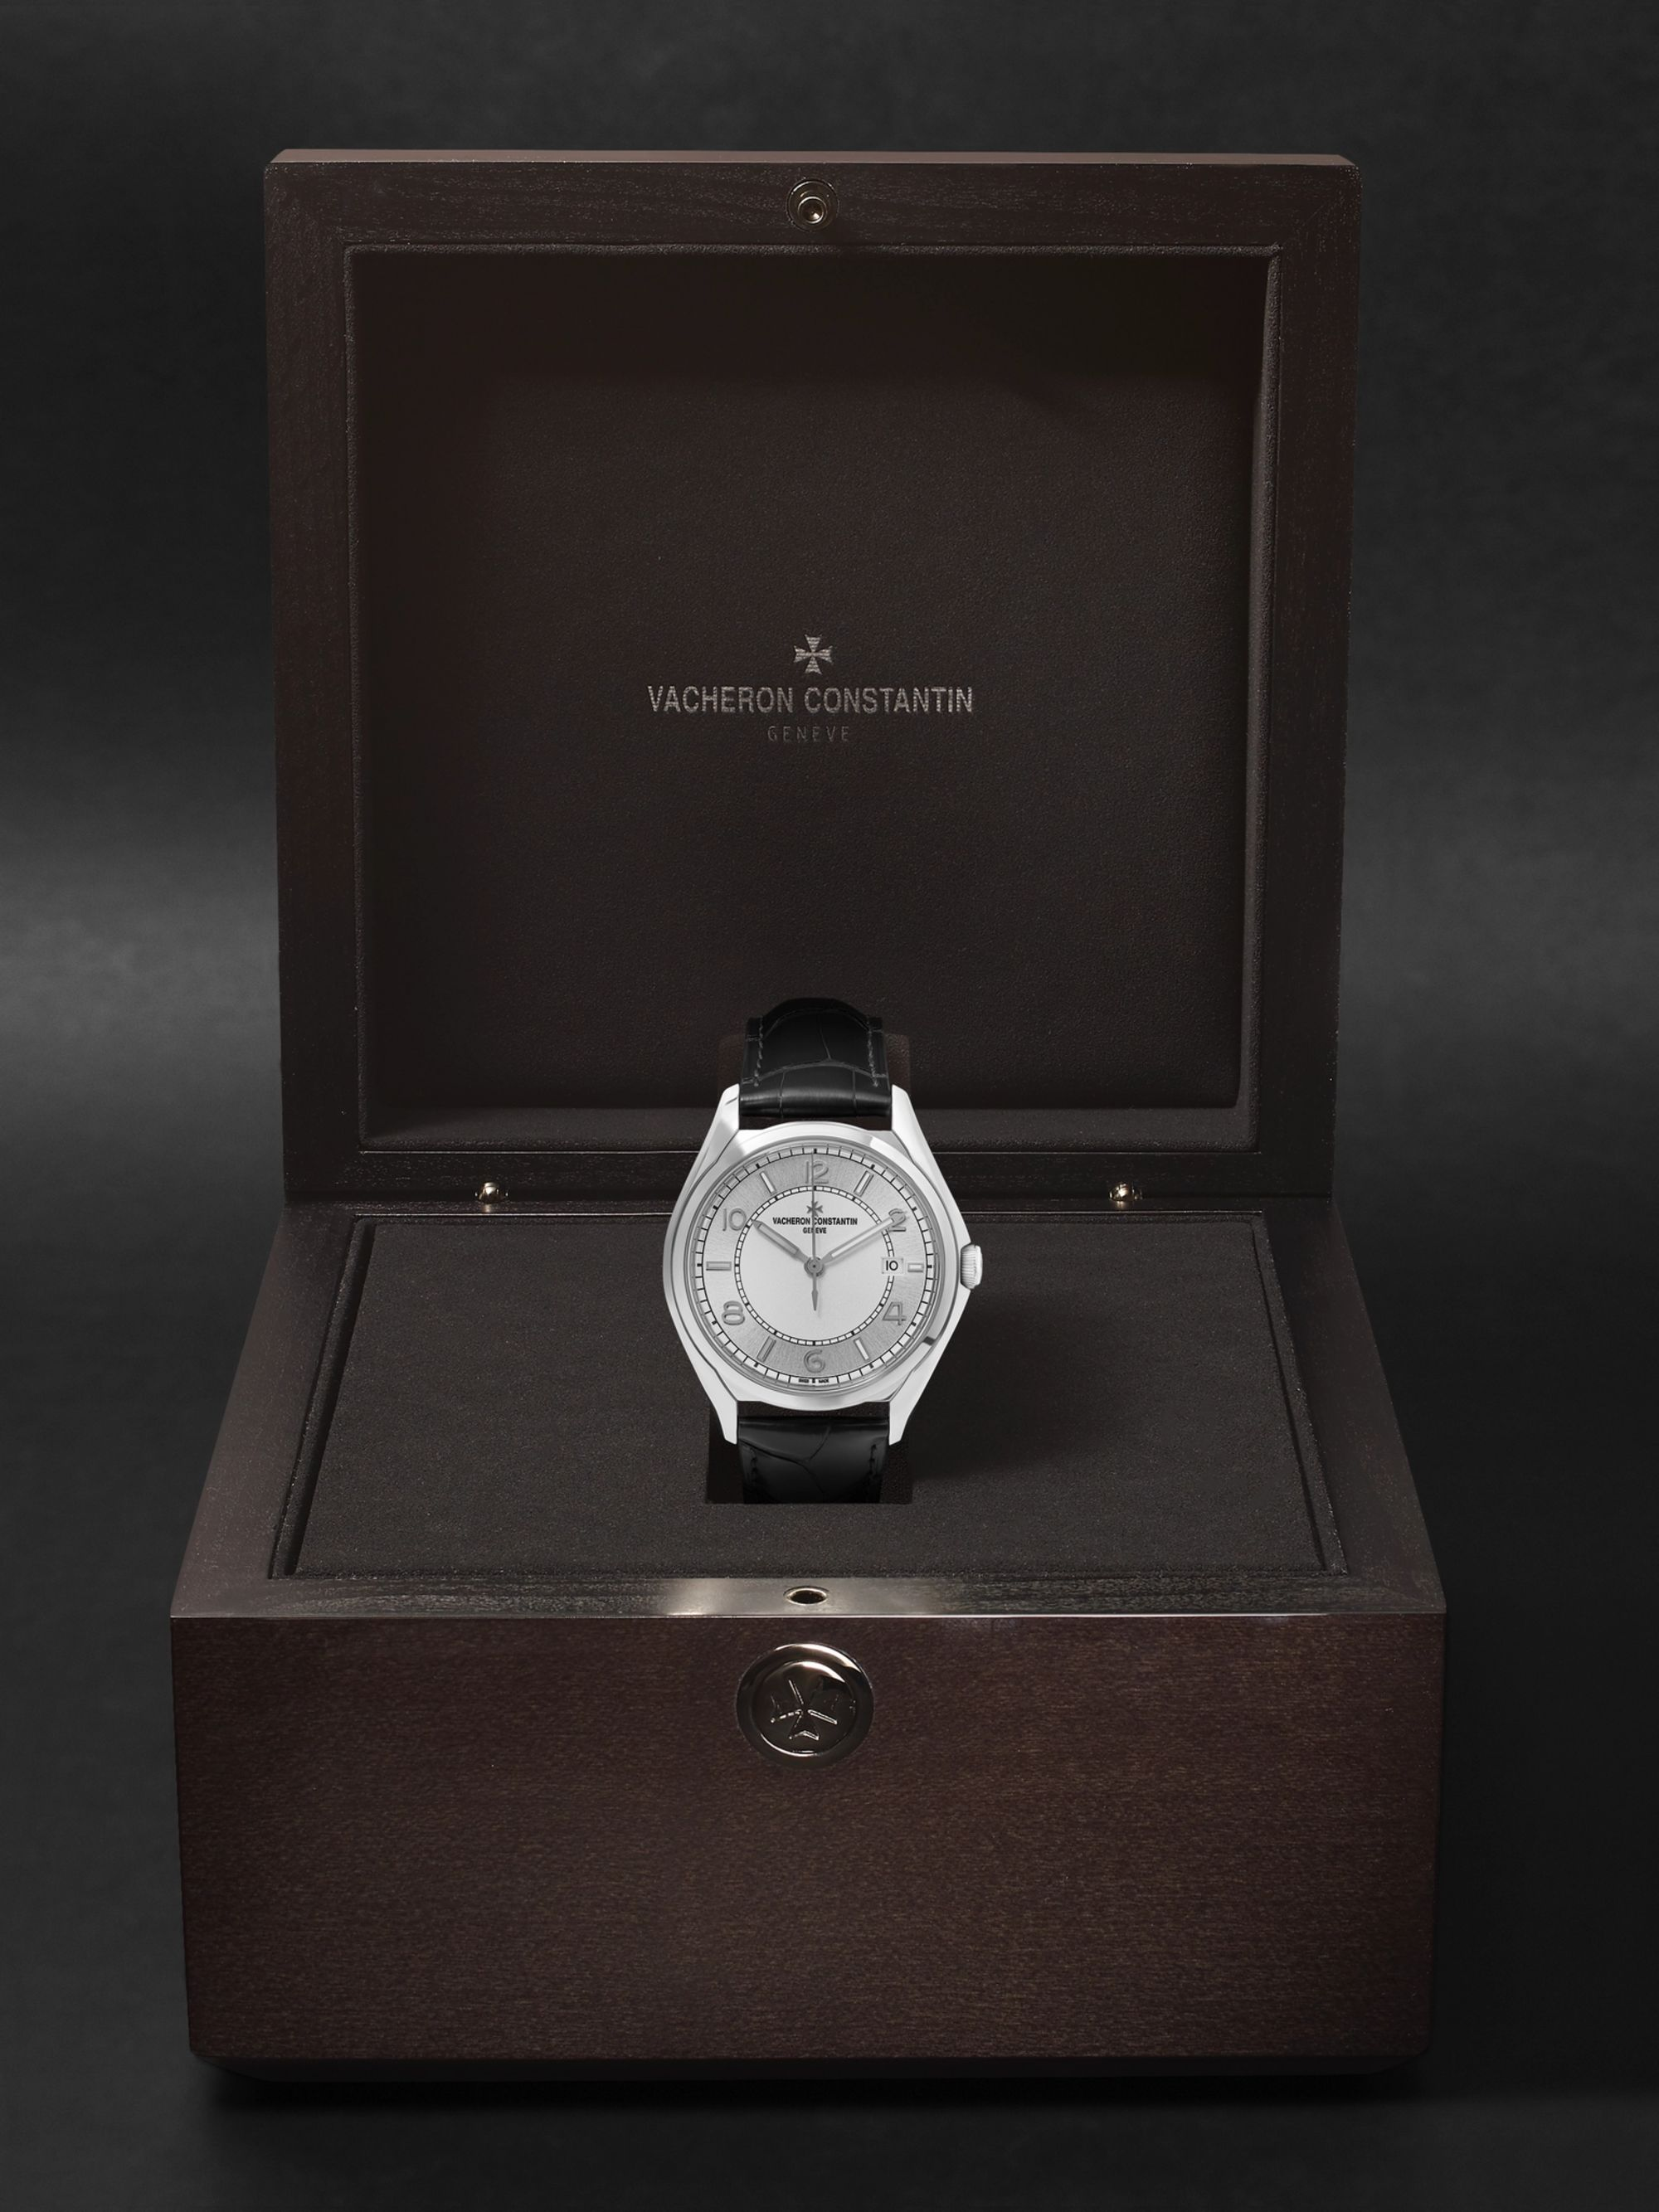 Vacheron Constantin Fiftysix Automatic 40mm Stainless Steel and Alligator Watch